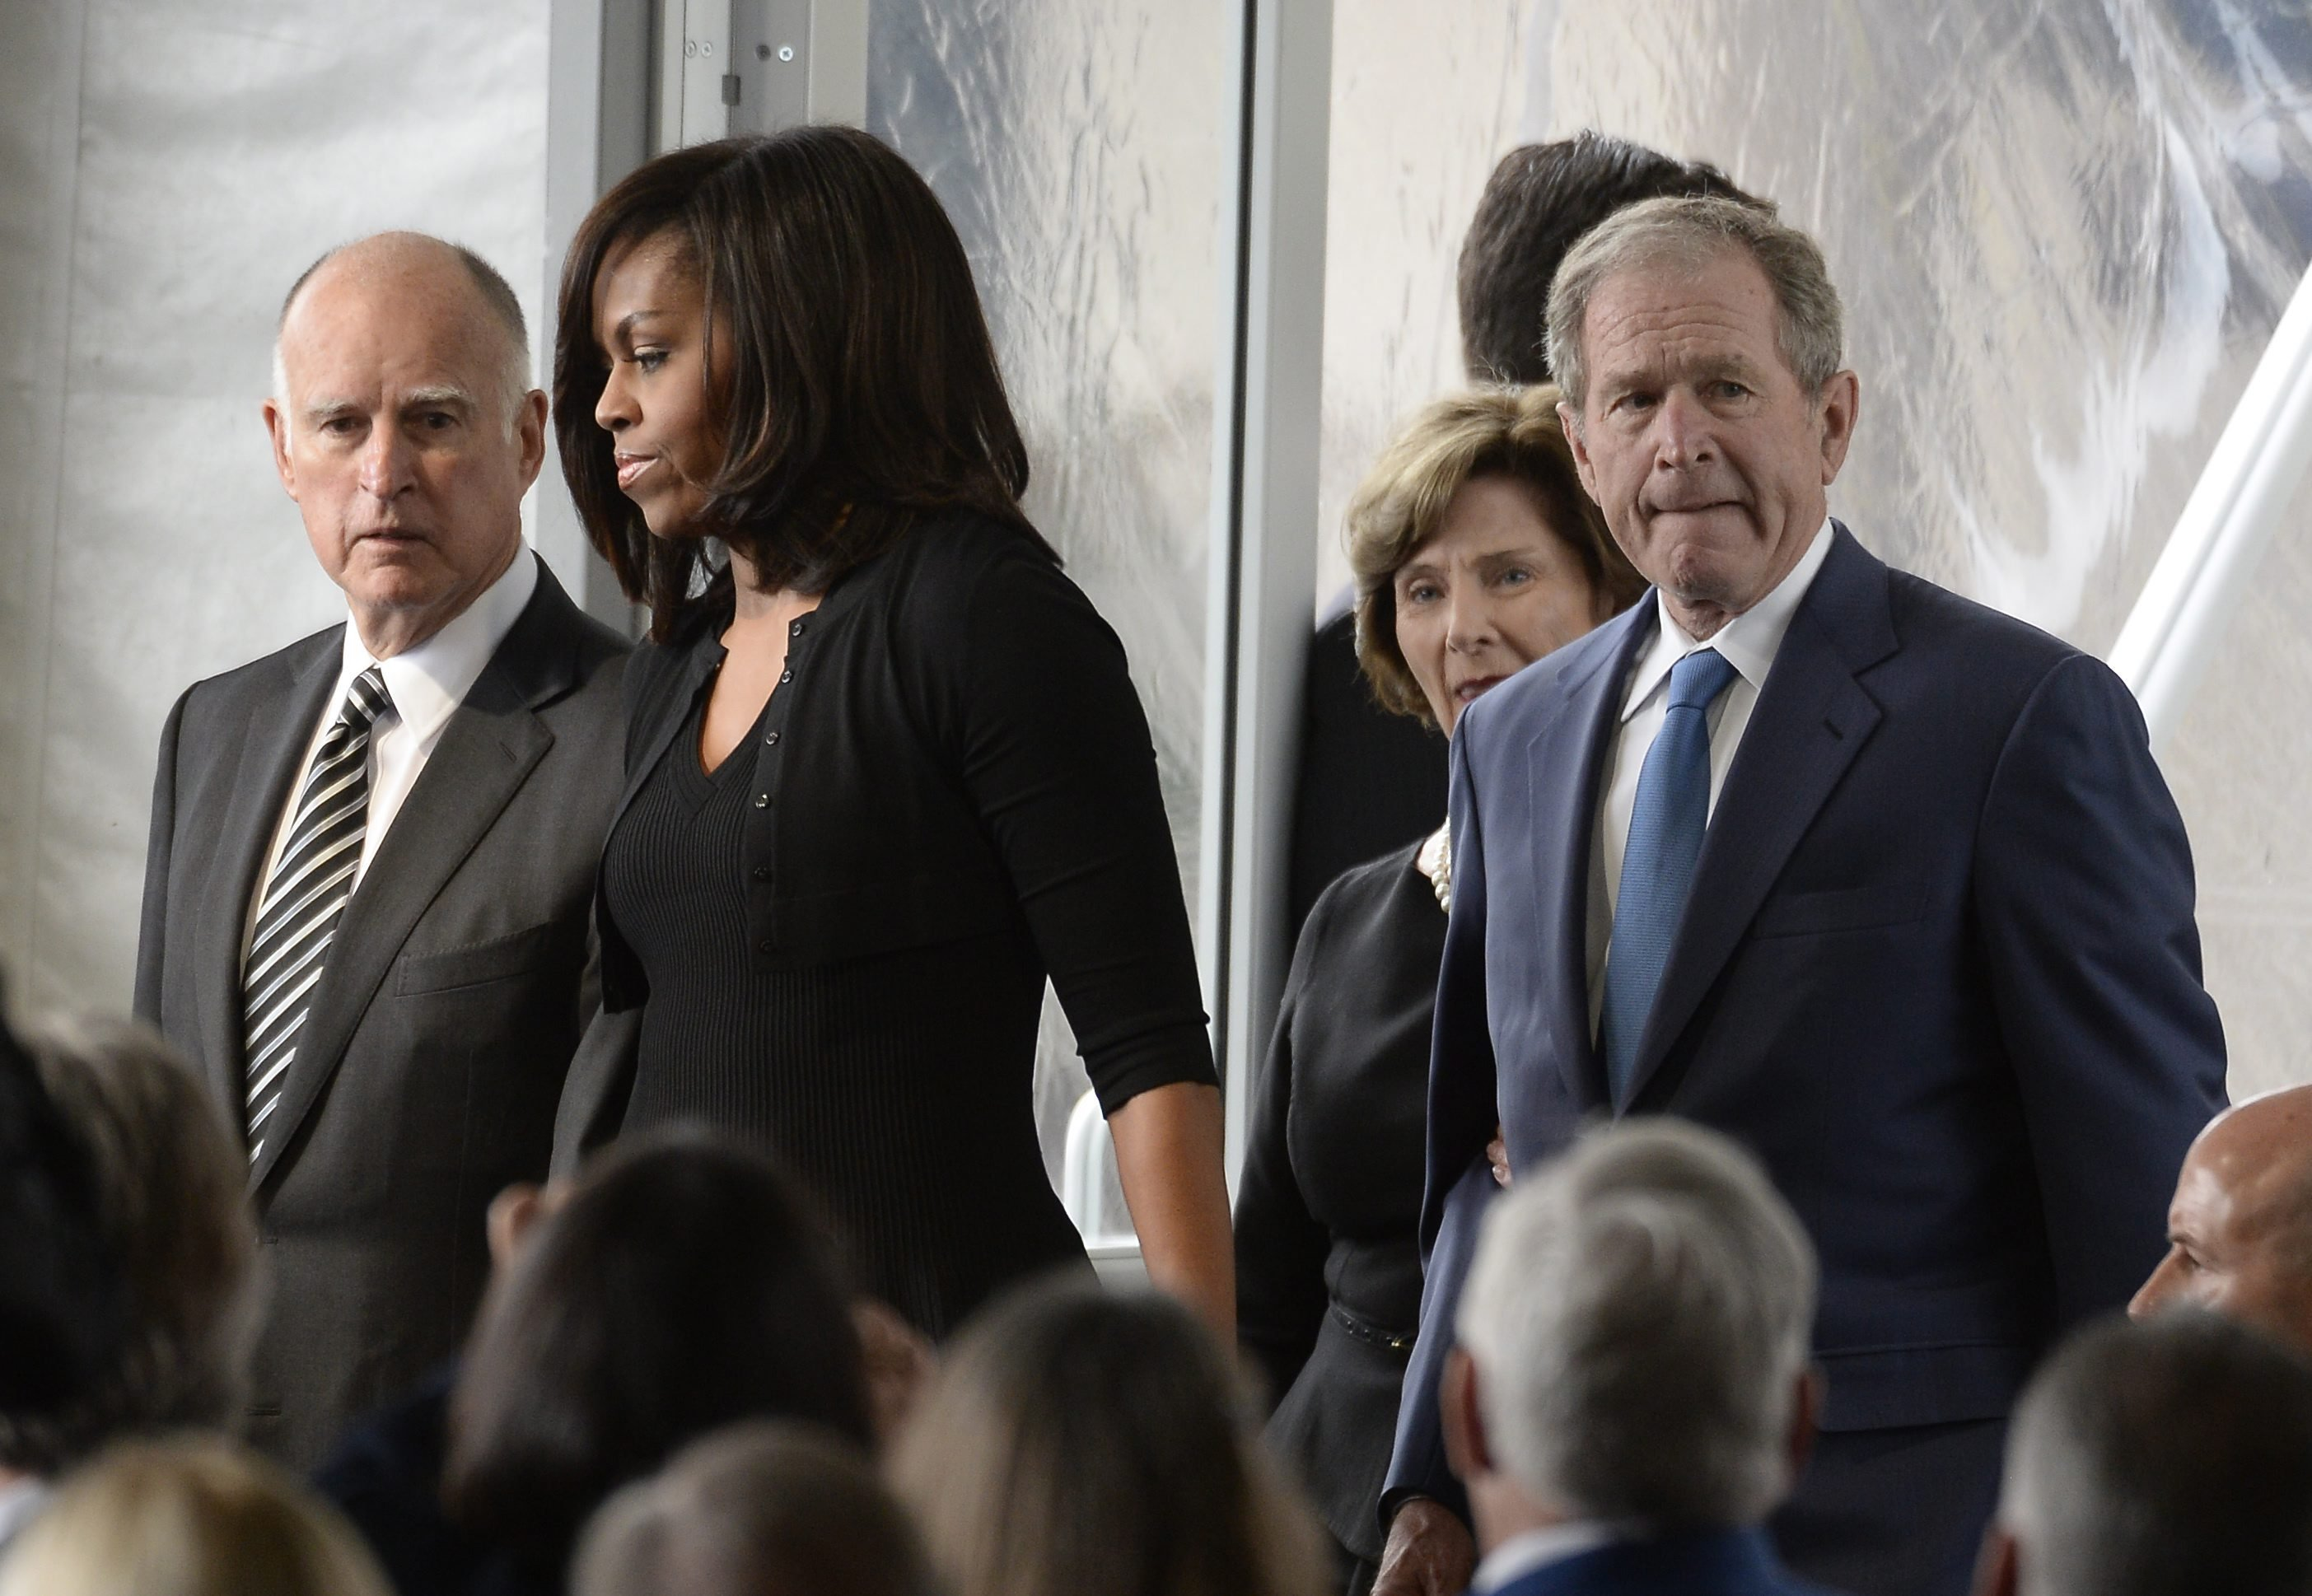 From left, California Governor Jerry Brown, First Lady Michelle Obama, former First Lady Laura Bush, and former President George Bush attend the funeral, March 11, 2016.